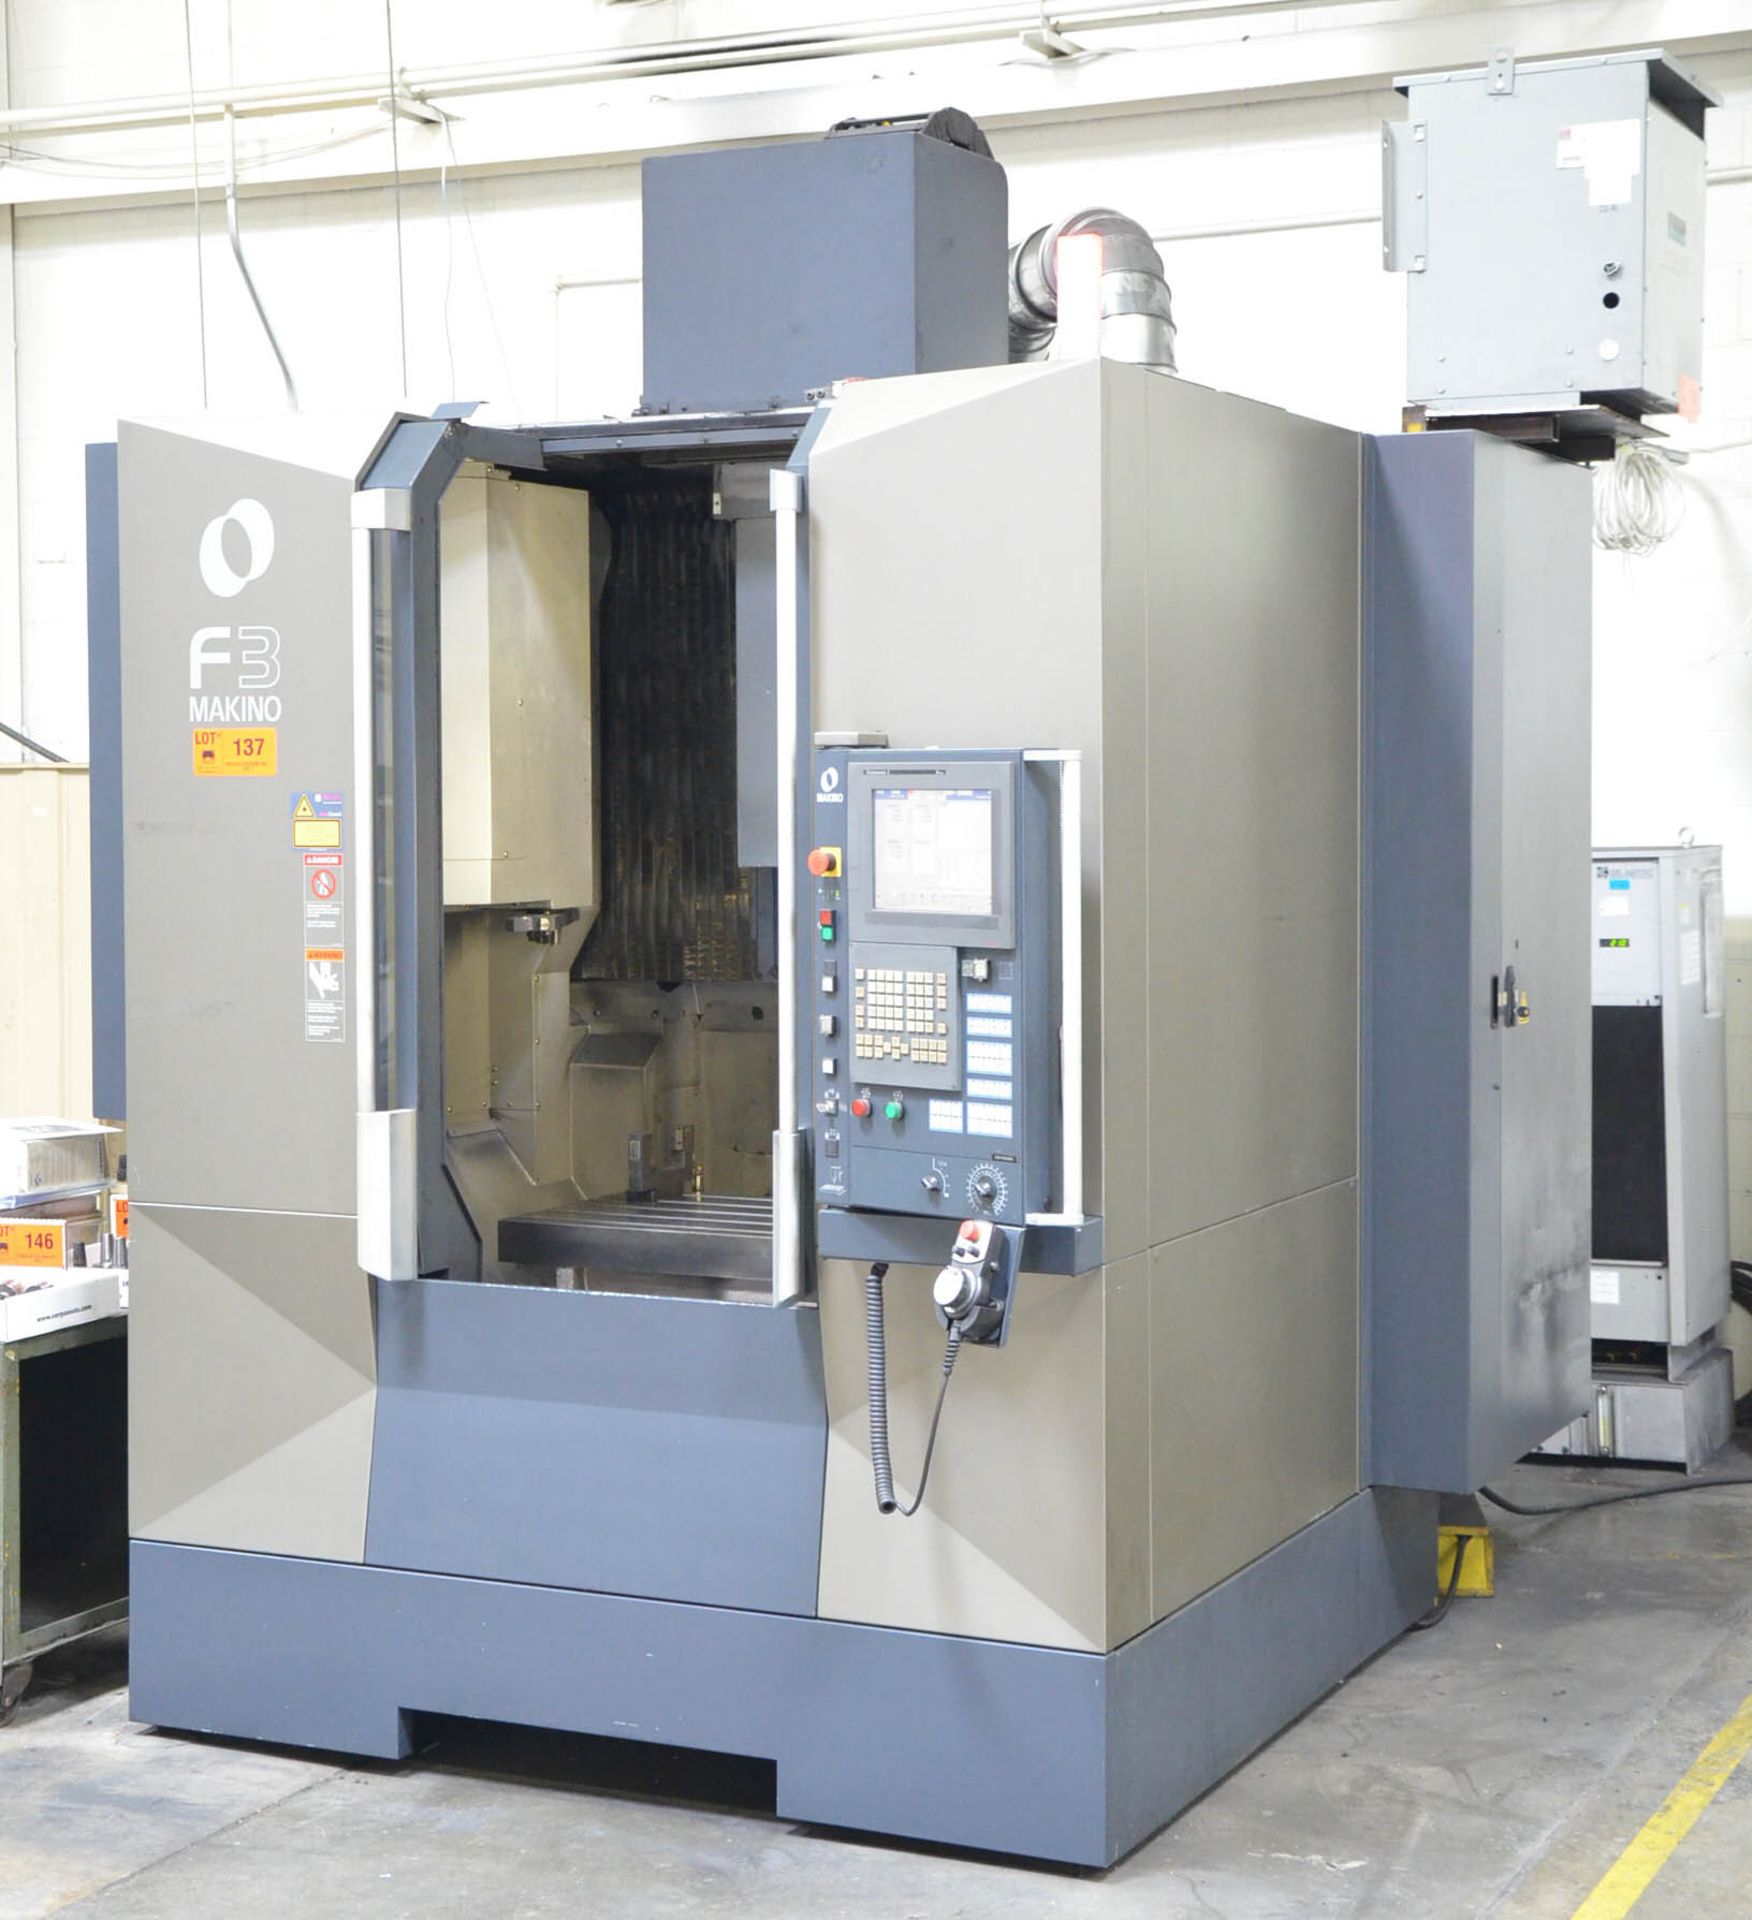 MAKINO (2012) F3 CNC VERTICAL MACHINING CENTER WITH MAKINO PROFESSIONAL 5 TOUCHSCREEN CNC CONTROL, - Image 4 of 9